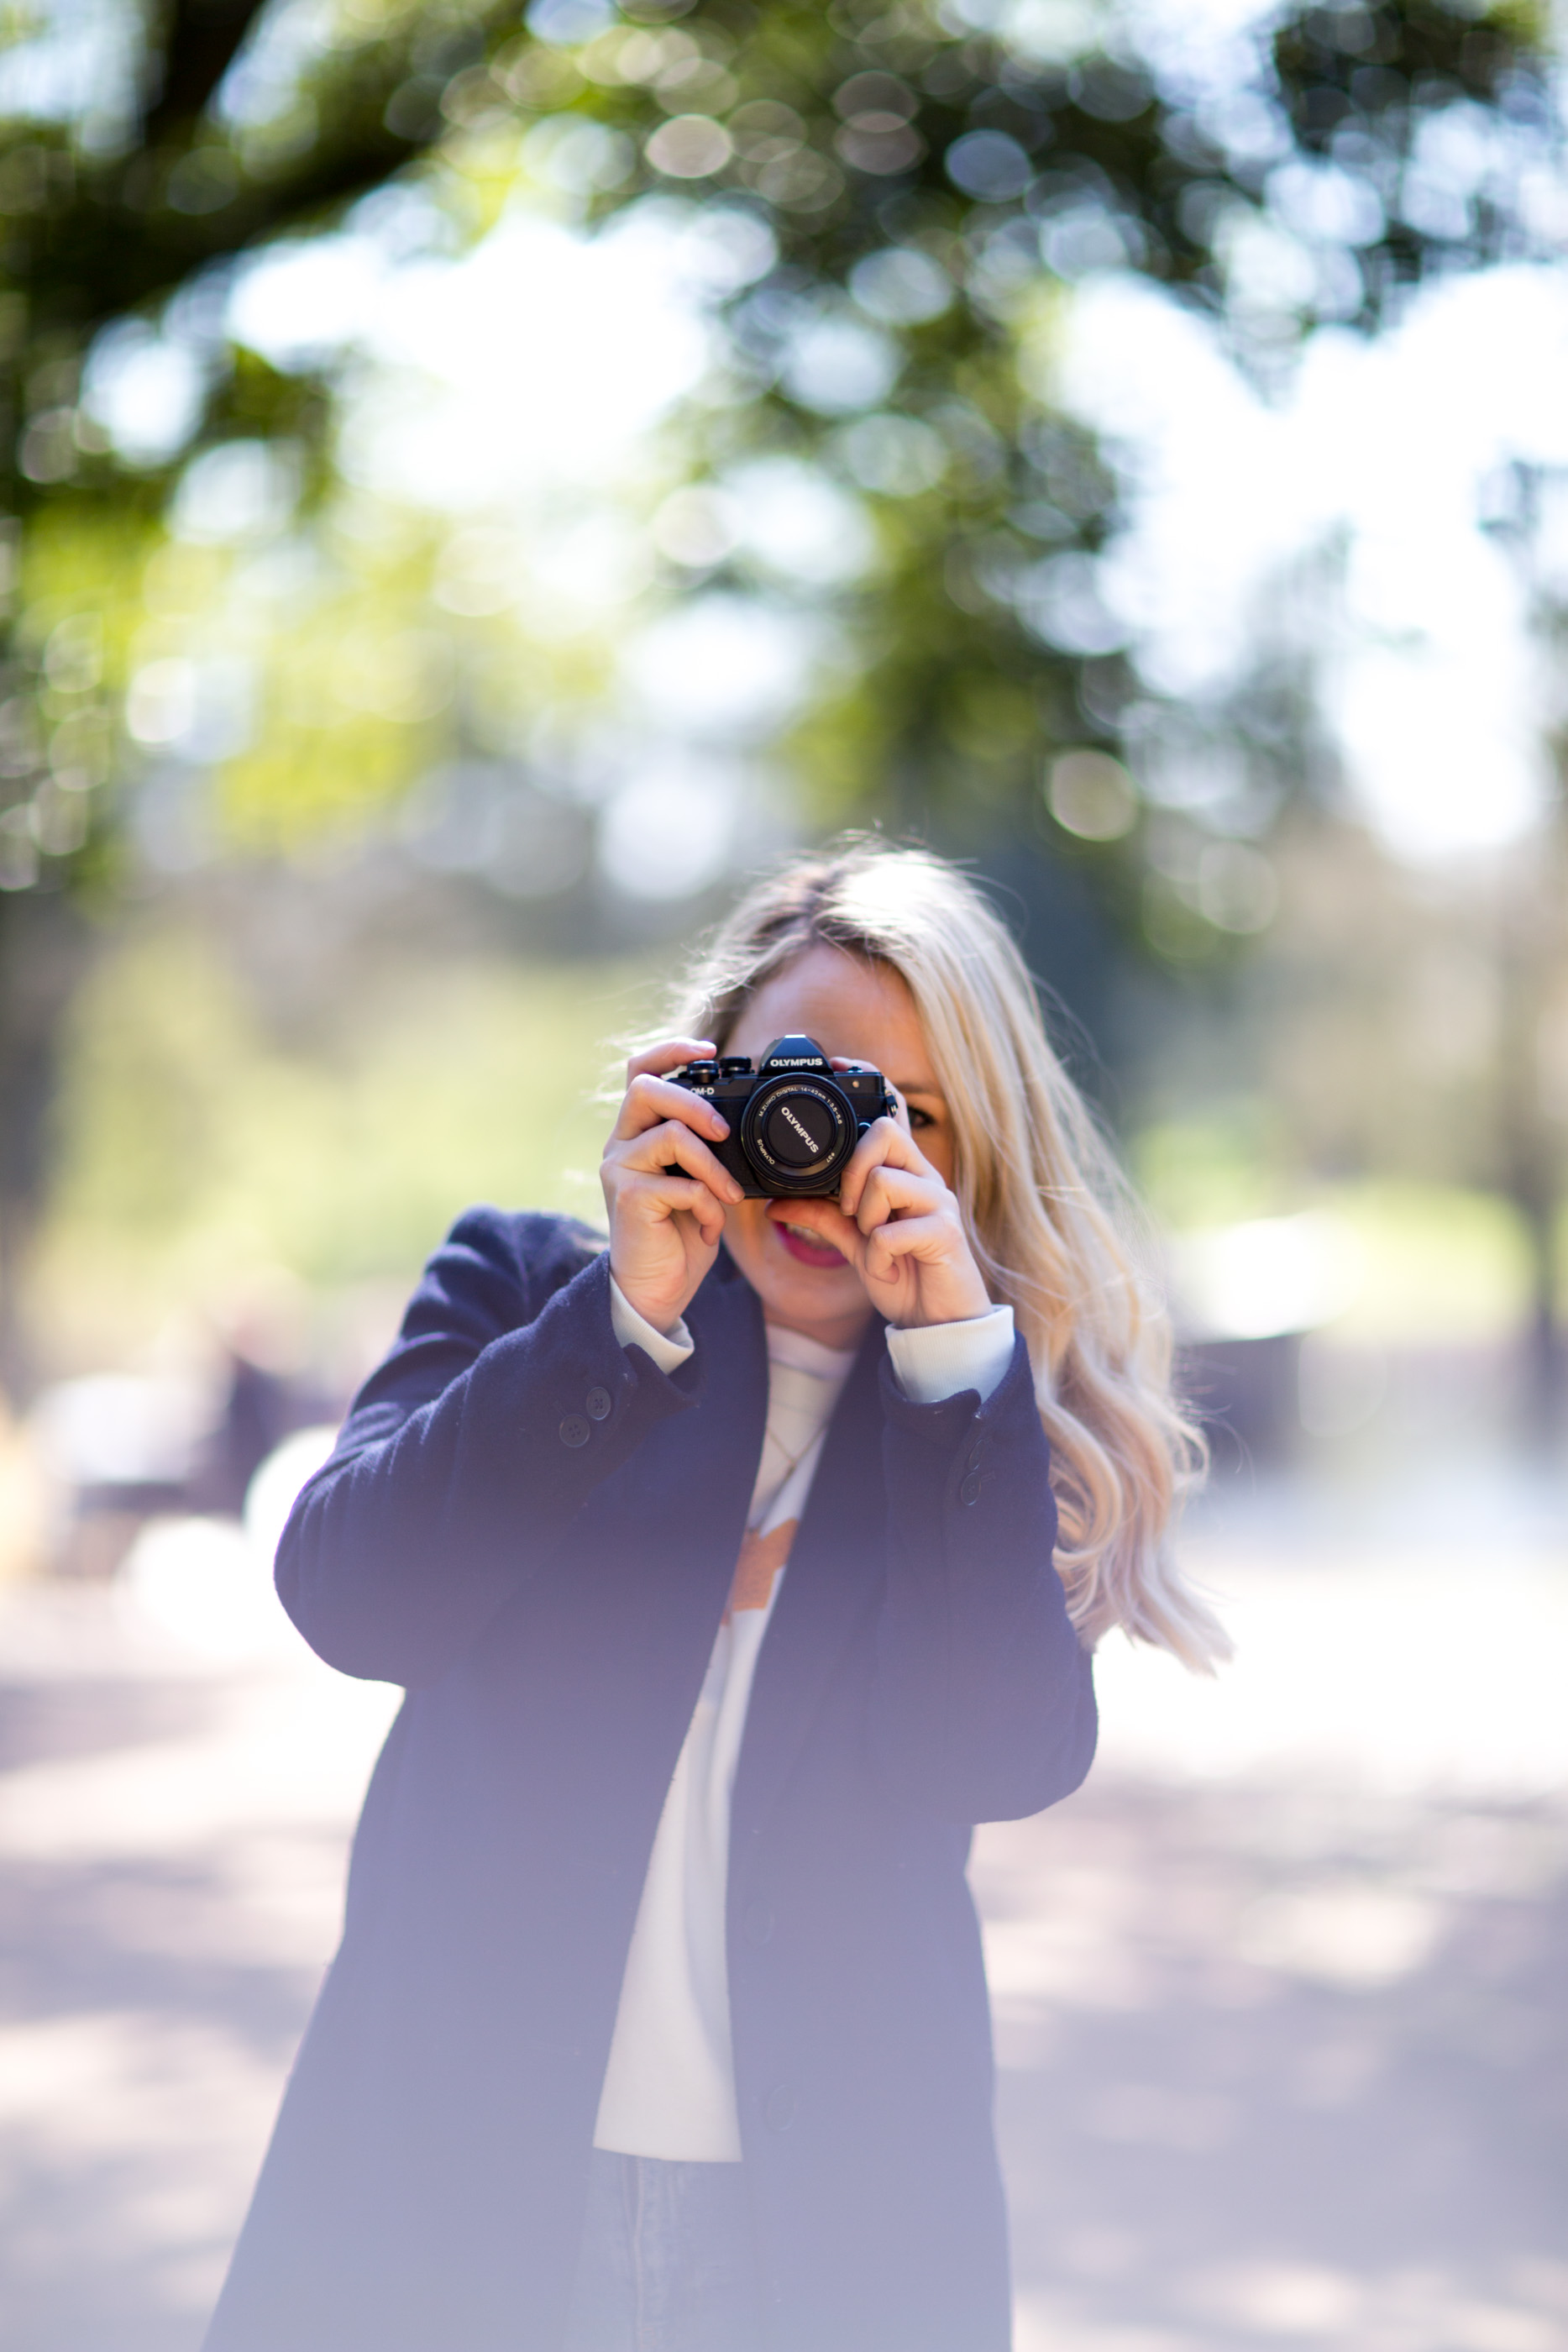 how to improve your photography | mediamarmalade